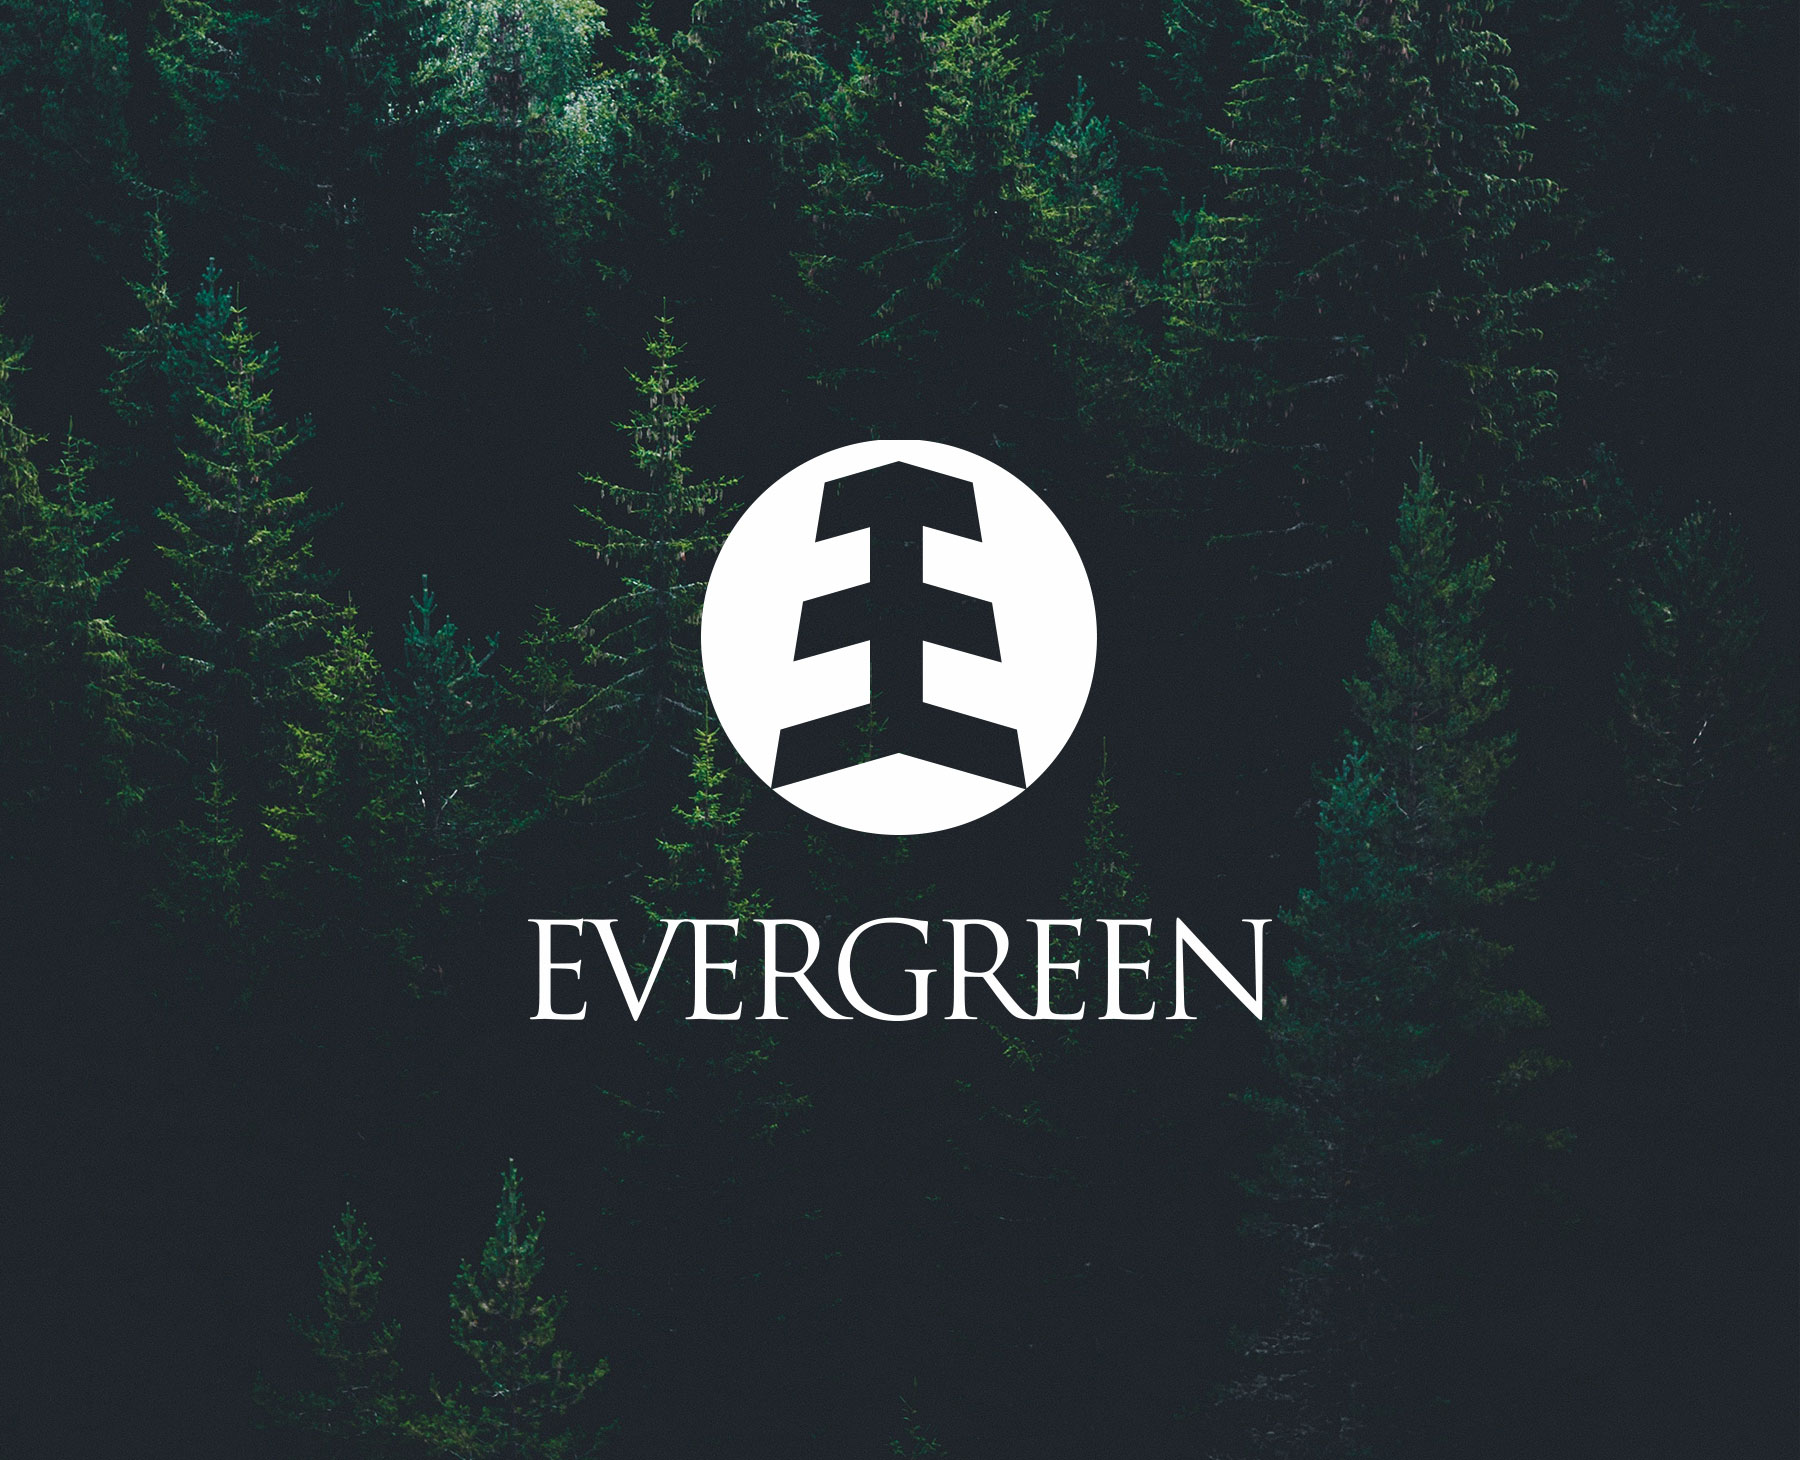 Evergreen™ - You have goals. We help you focus your vision and maximize your decisions. From real estate and business investment to training management and mediation. We're the business coach you've been looking for.